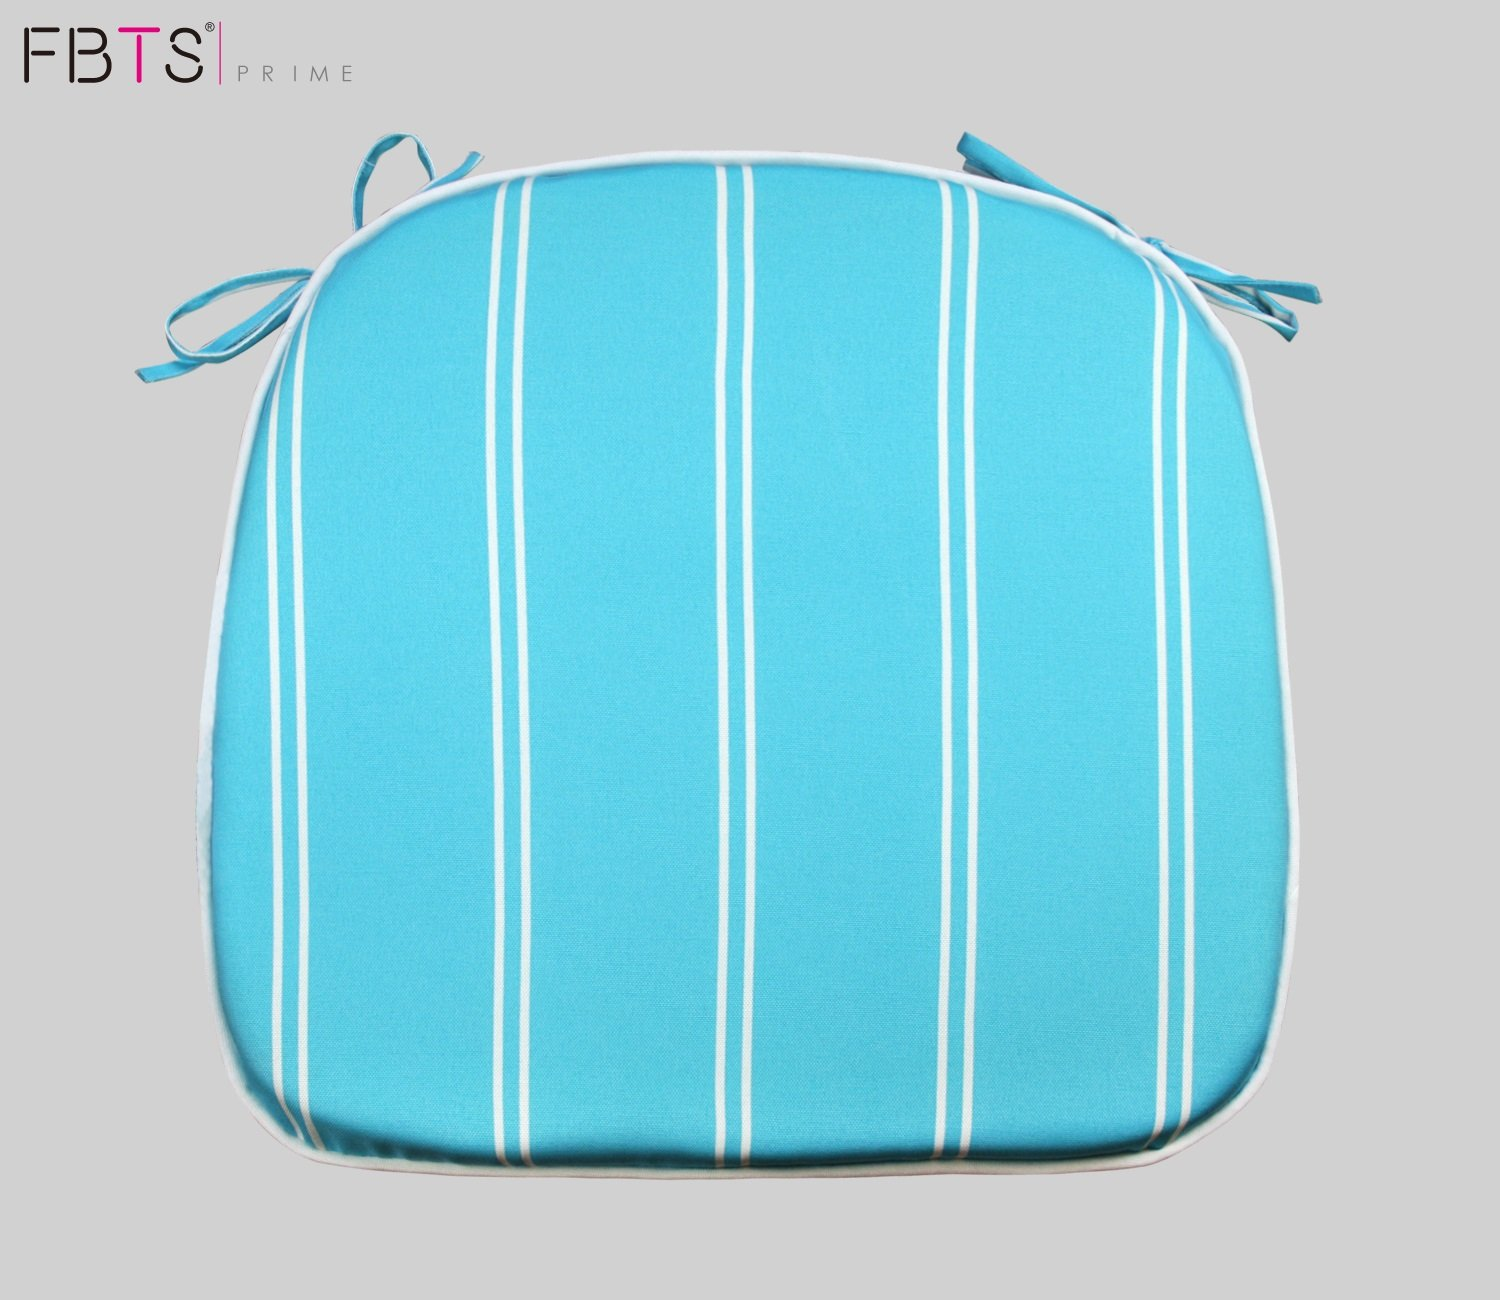 FBTS Prime Outdoor Chair Cushions (Set of 2) 16x17 Inches Patio Seat Cushions Blue and White Stripe Square Chair Pads for Outdoor Patio Furniture Garden Home Office